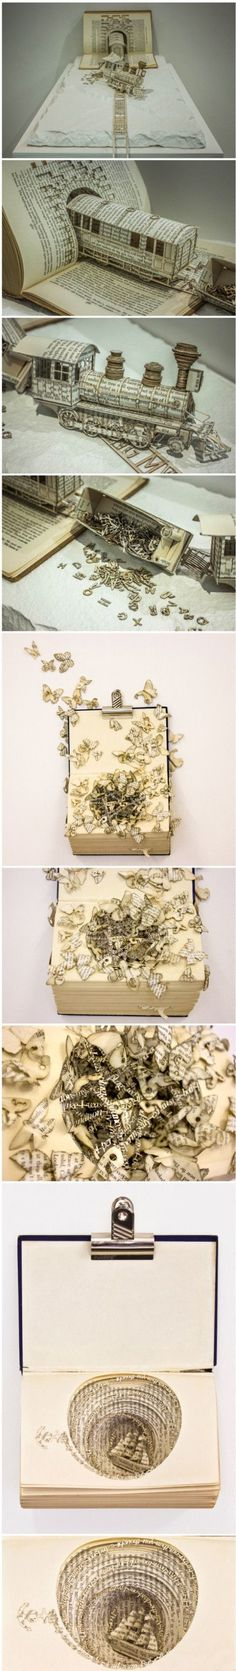 amazing book sculpture